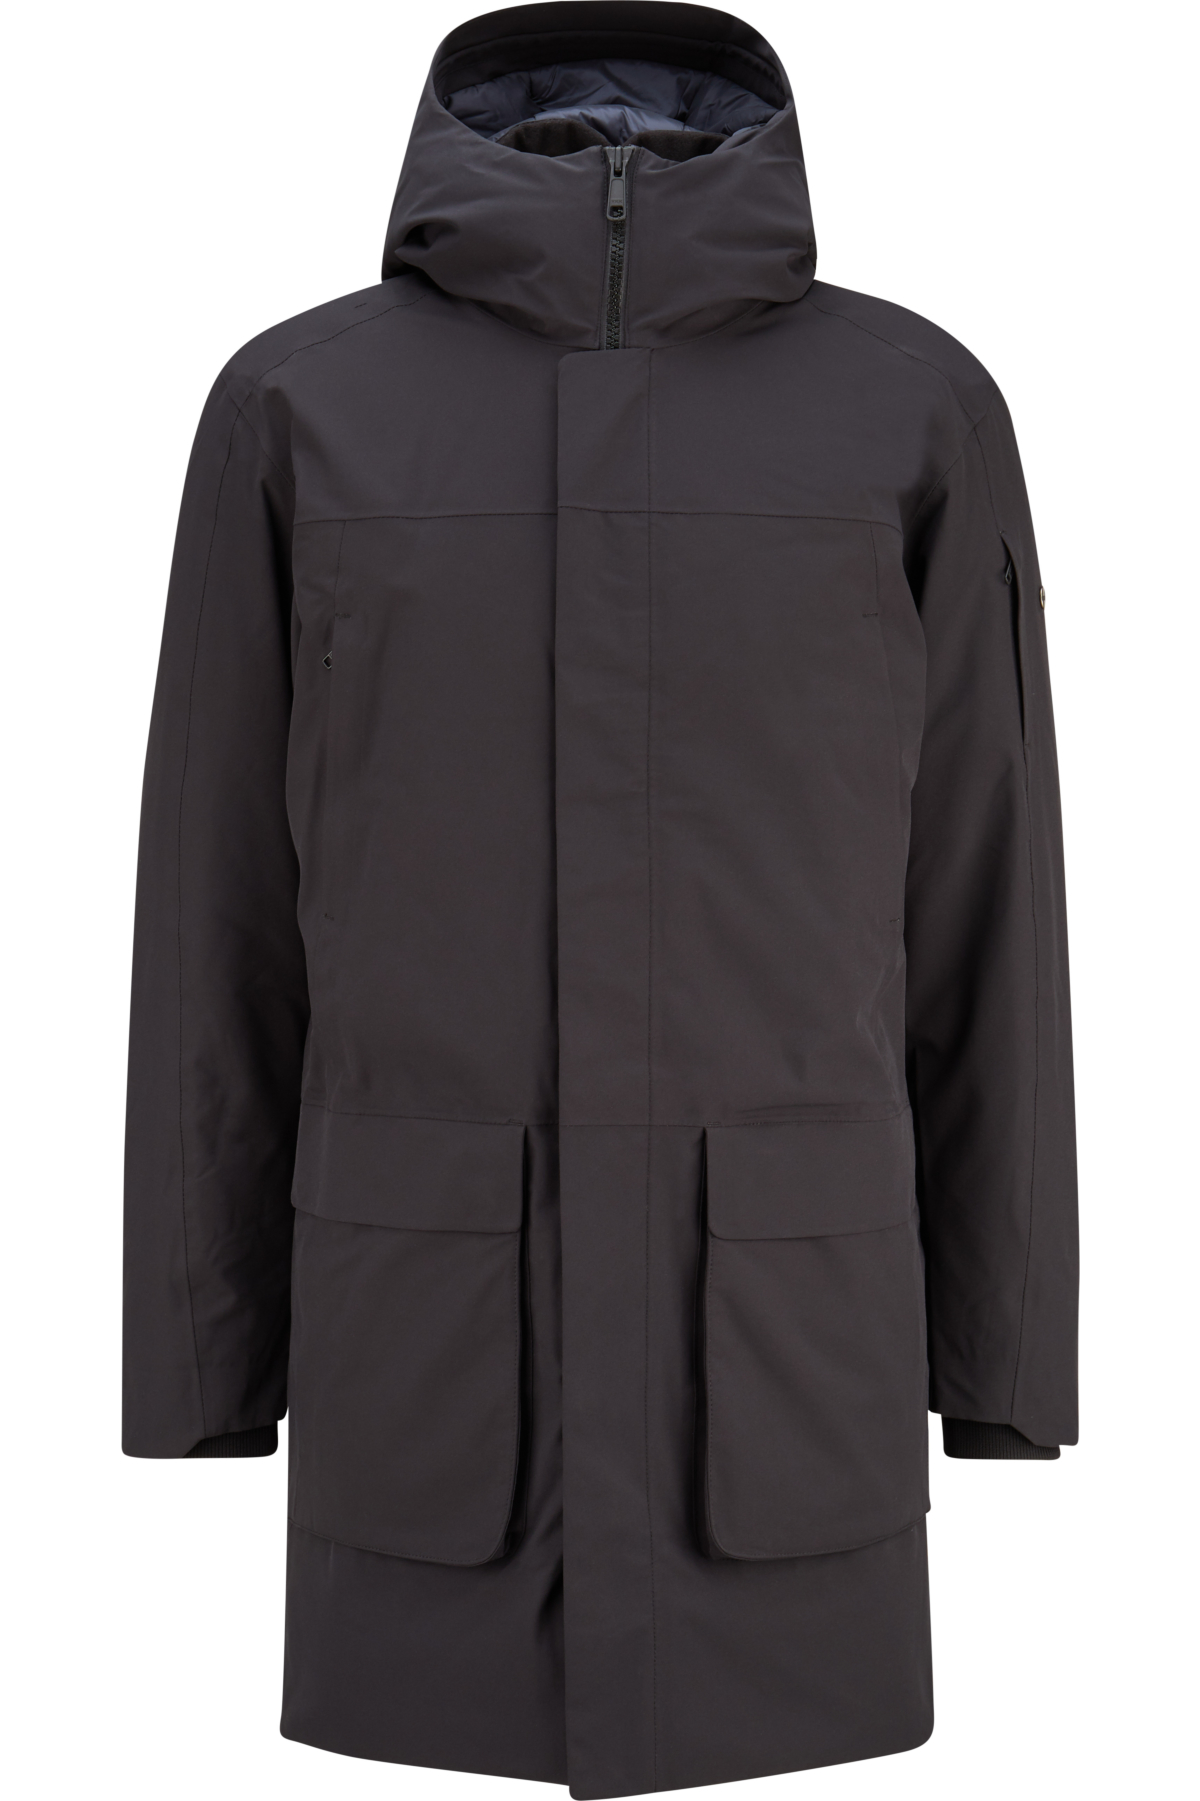 Scandinavian Edition Outdoorparka in Schwarz 439385